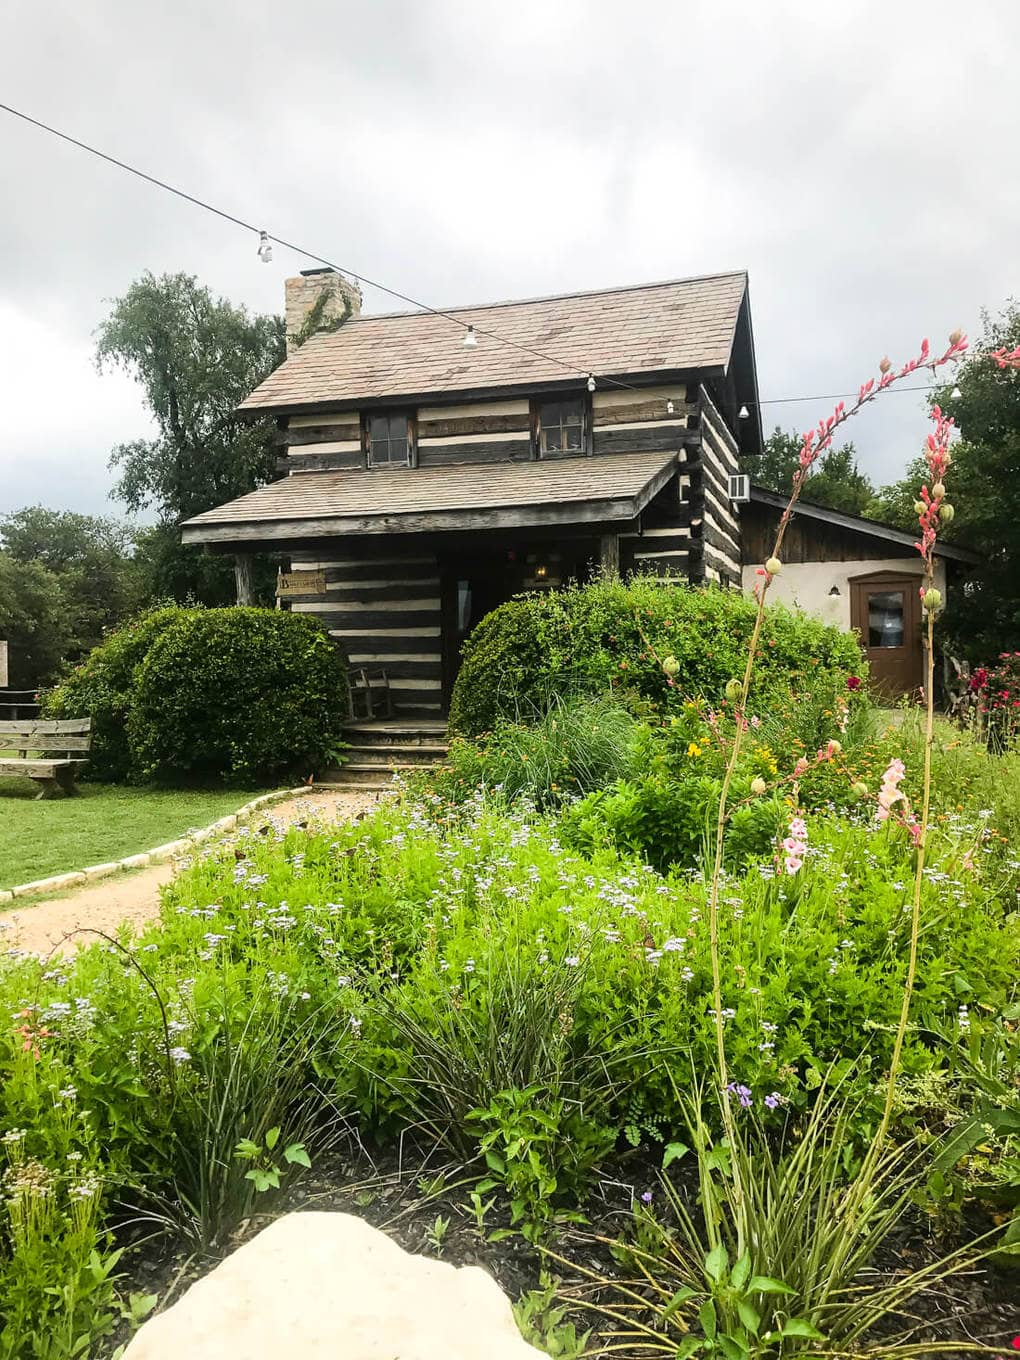 Heading to Waco to visit the Silos? Be sure you take a detour to visit Heritage Homestead - it's a gorgeous community with a similar feel to Magnolia but way fewer crowds! See all of the details here!